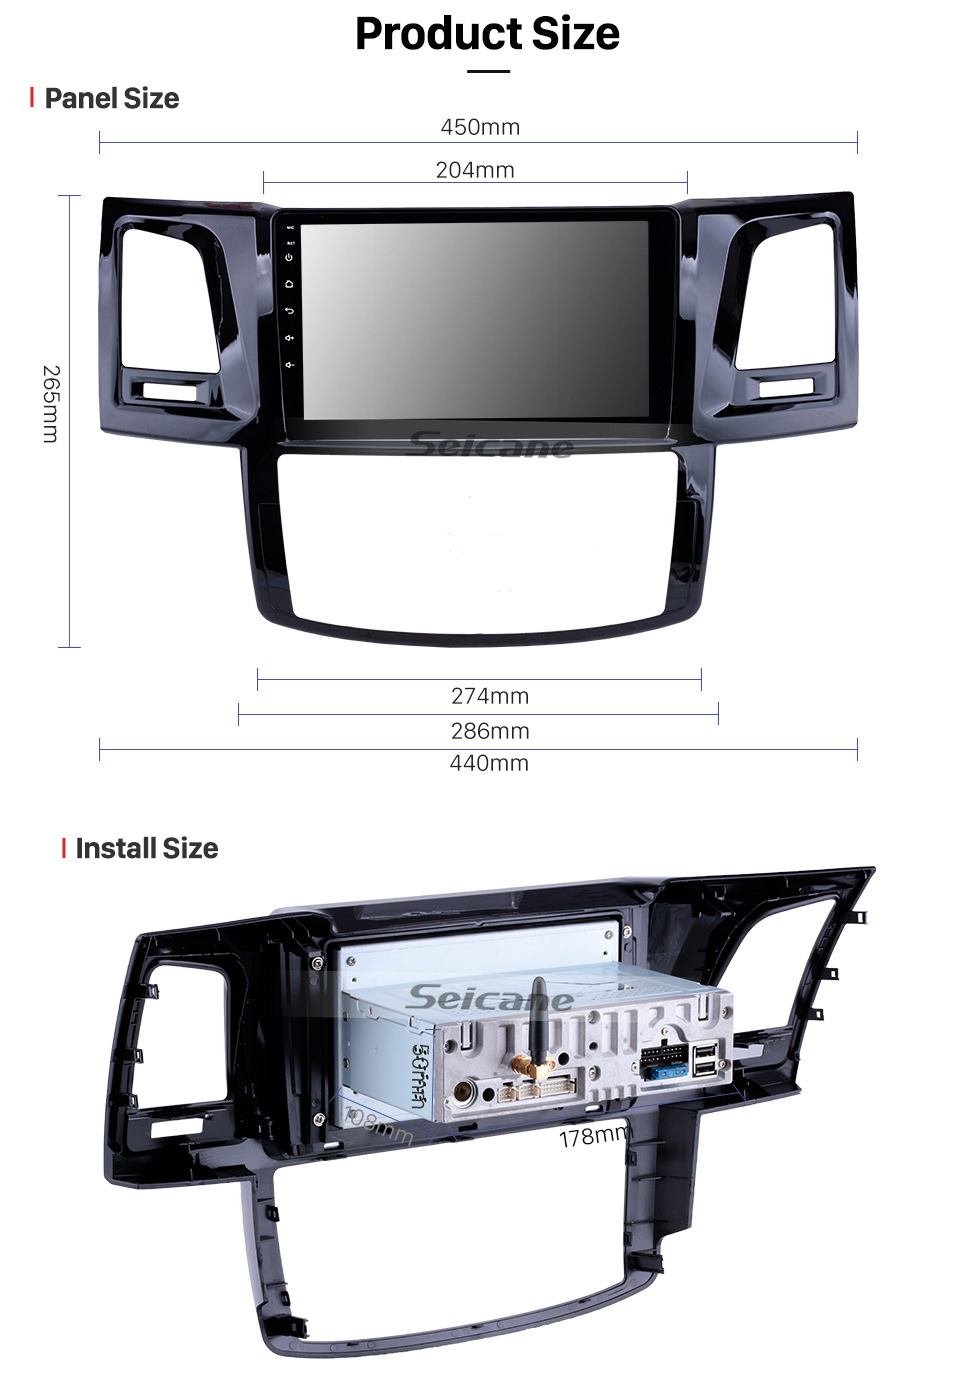 Seicane OEM 9 inch Android 9.0 GPS Navigation Radio for 2008-2014 Toyota Fortuner/Hilux Bluetooth HD Touchscreen Carplay USB support DVR Digital TV